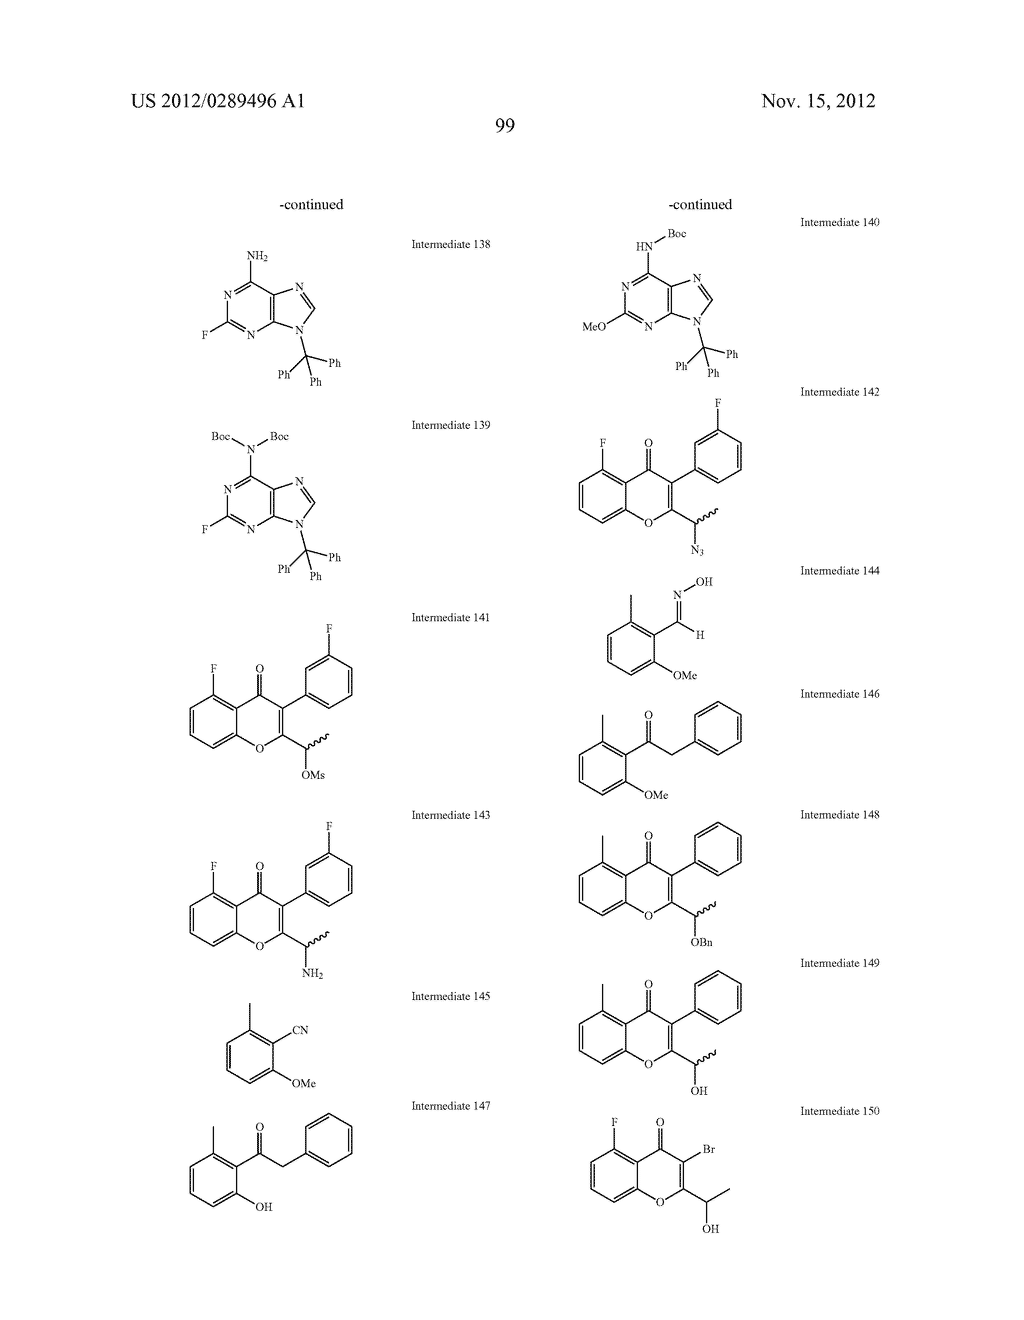 NOVEL COMPOUNDS AS MODULATORS OF PROTEIN KINASES - diagram, schematic, and image 100